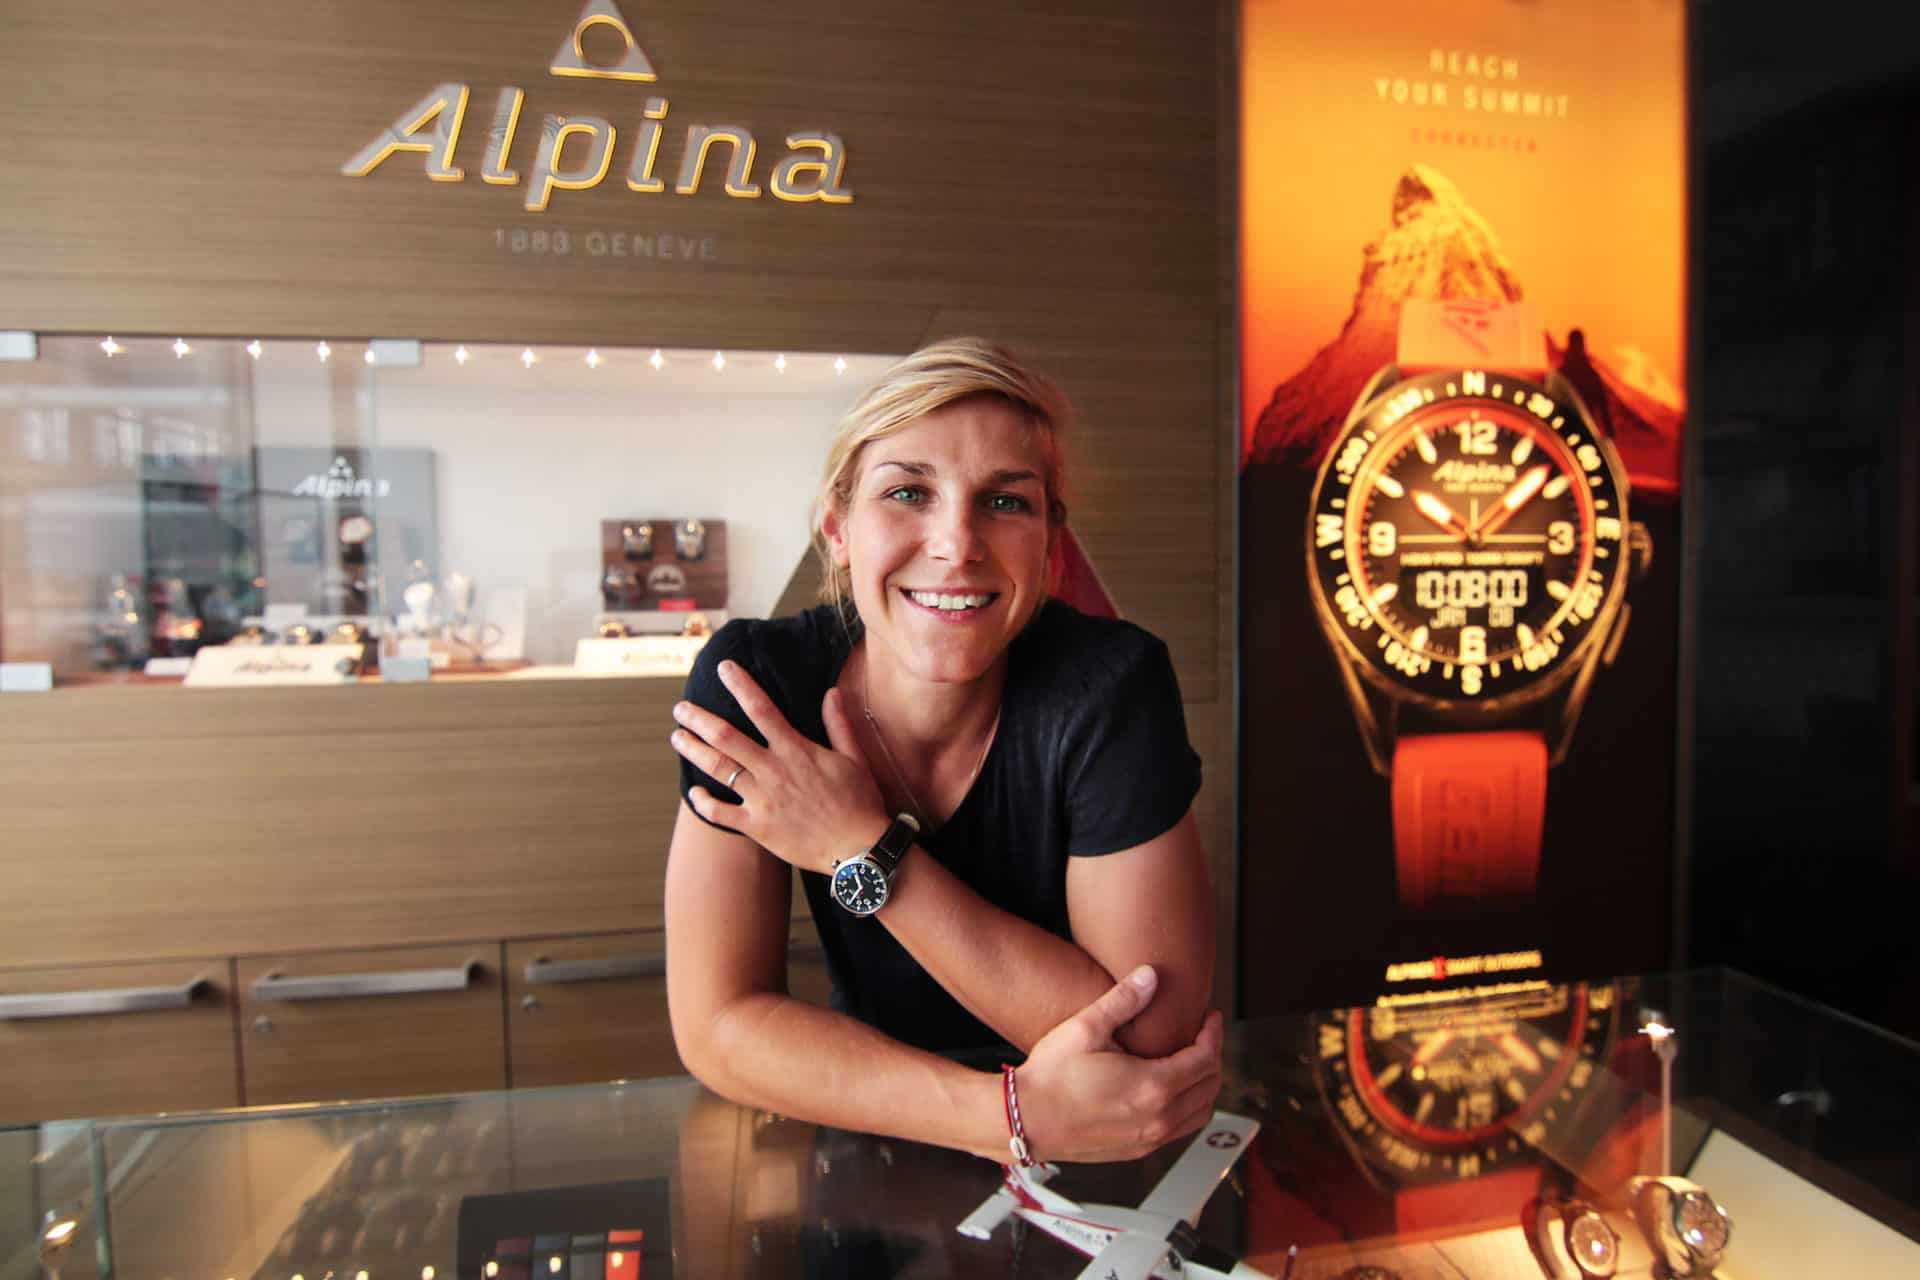 French FIS Worldcup Snowboarder Nelly Moenne-loccoz – Alpina Watches Brand Ambassador